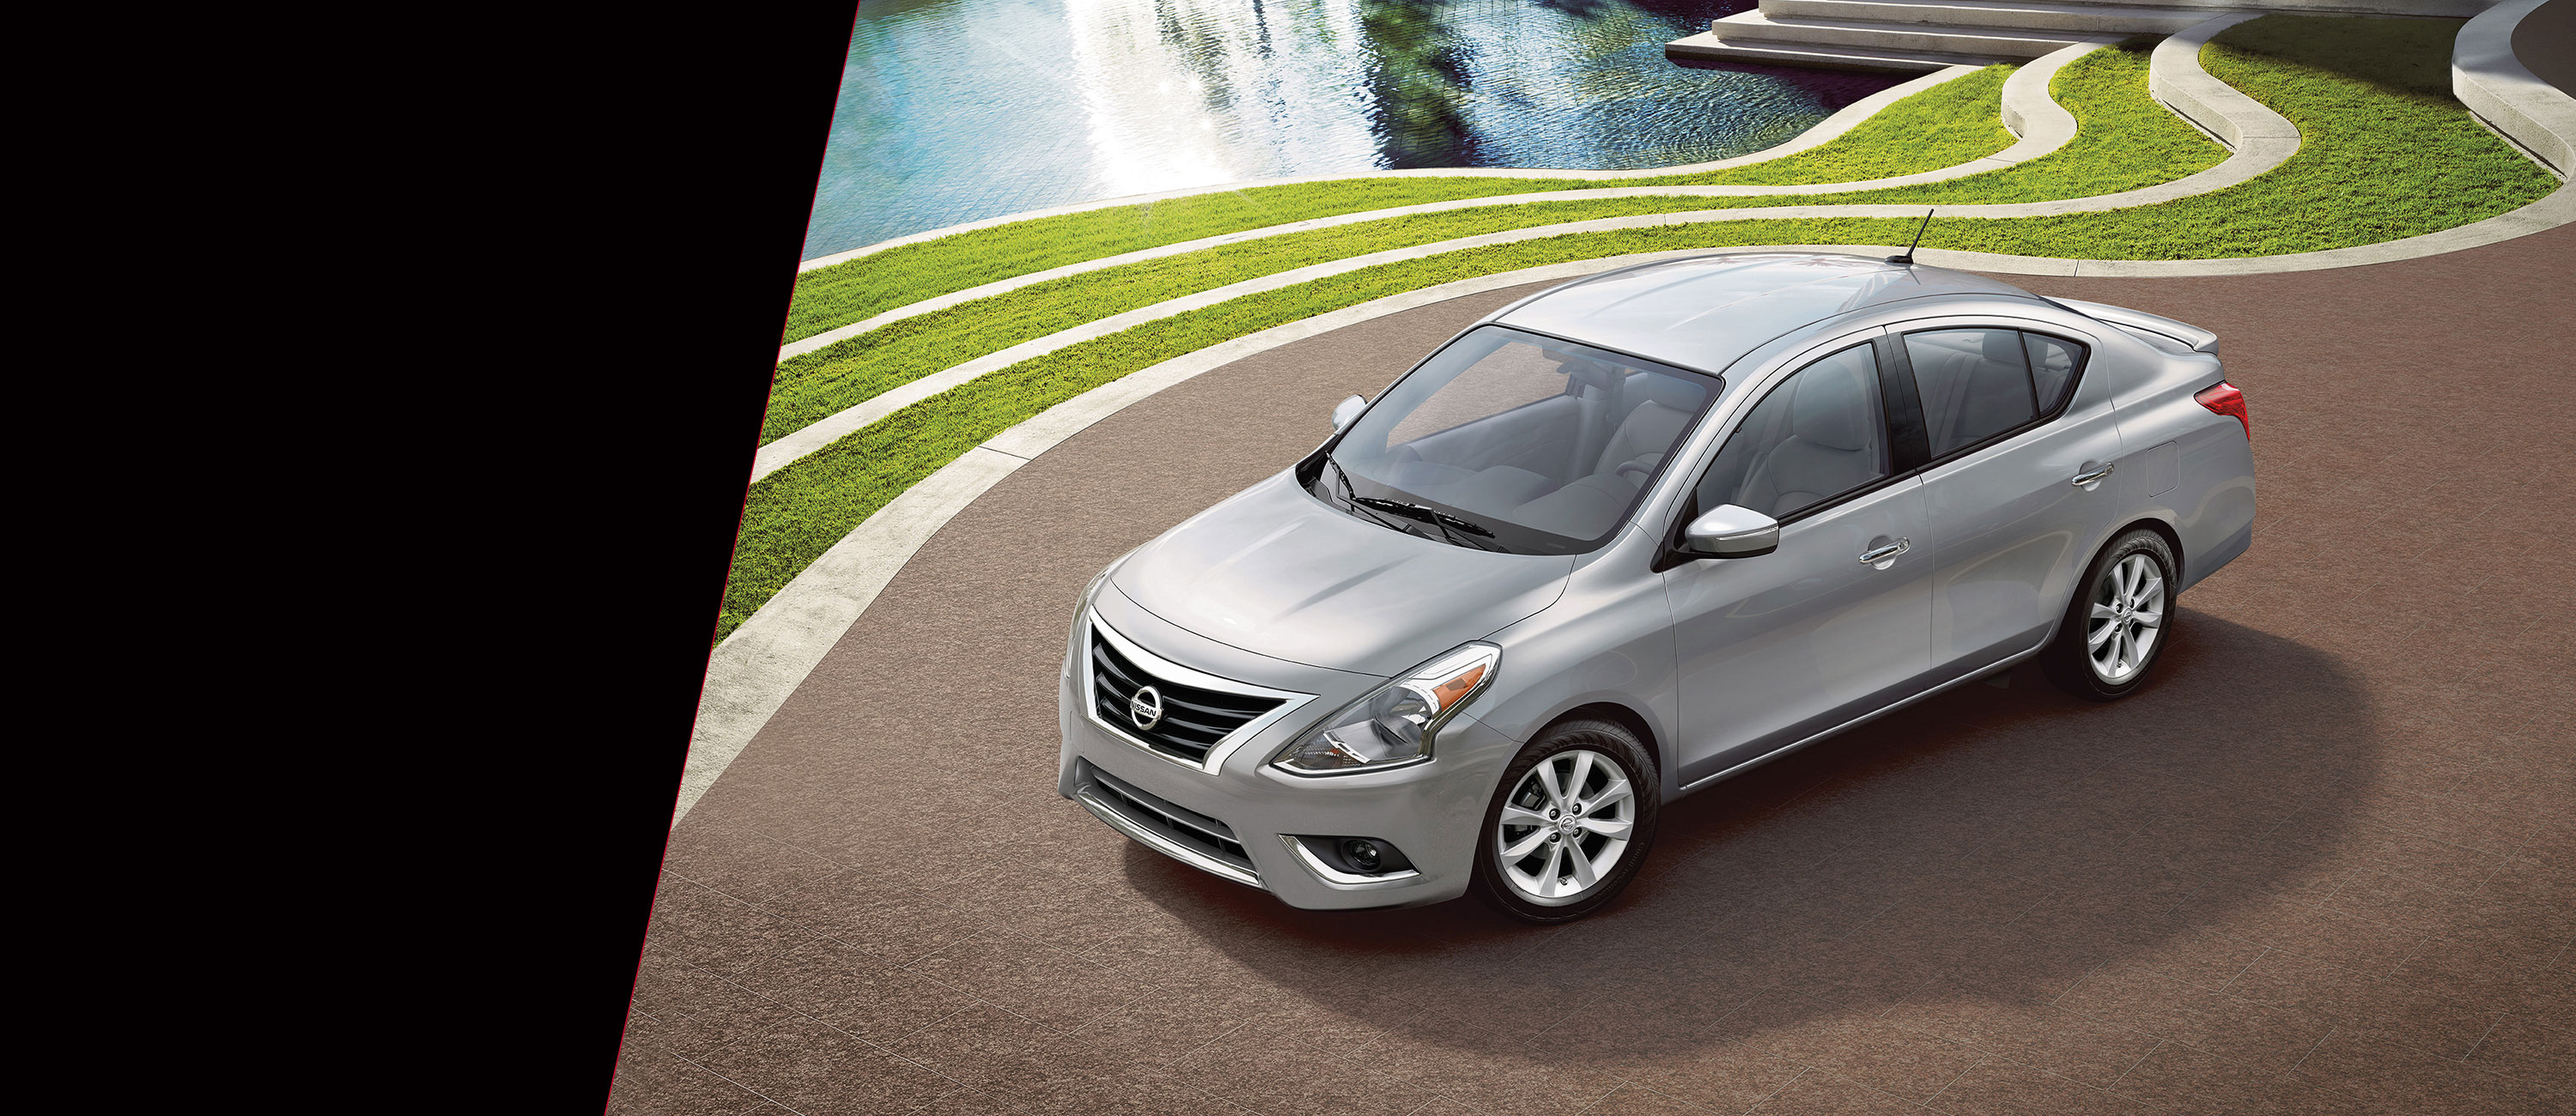 Nissan Sunny Ready For Anything At Your Business Fleet Nissan